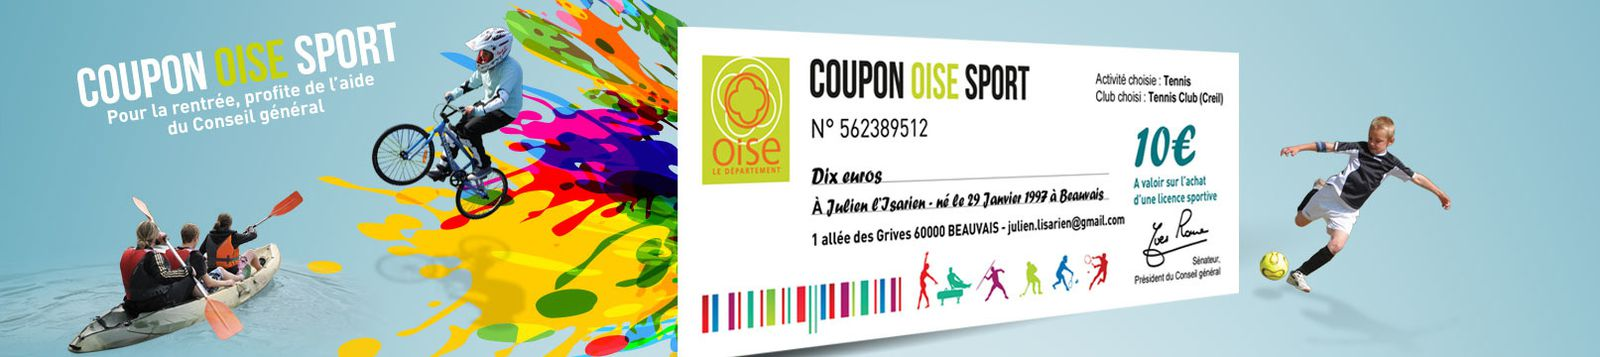 Coupon sport de l'oise